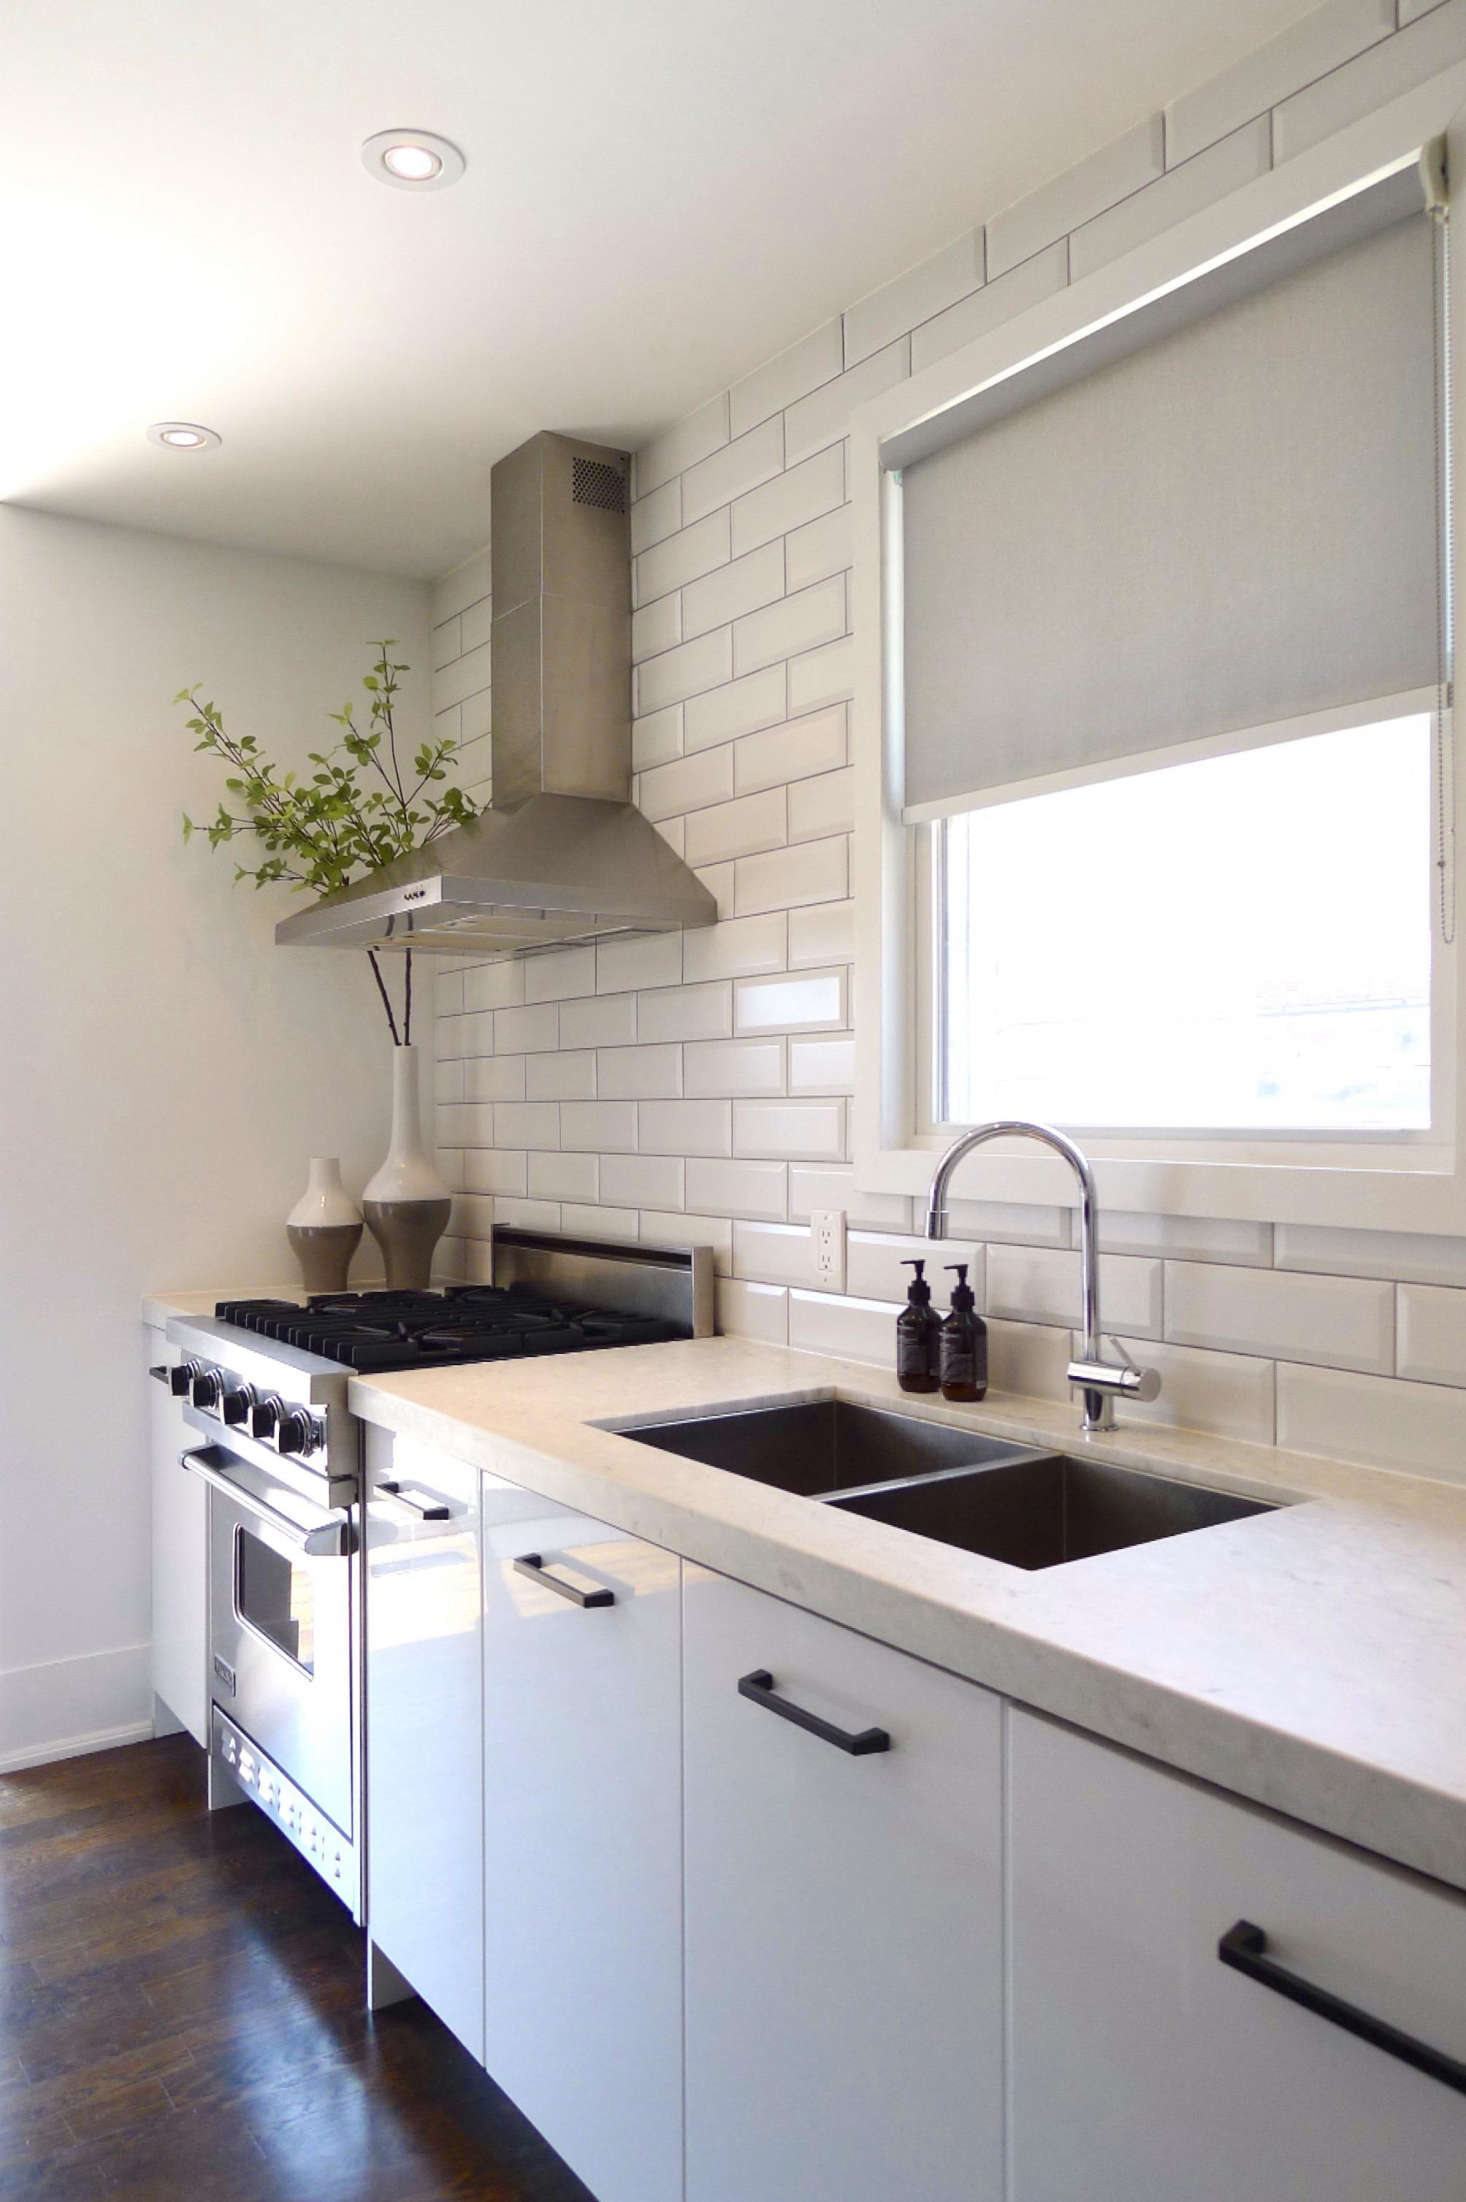 Best Amateur Kitchen Rustic And Refined In Toronto By Zachary Leung Remodelista